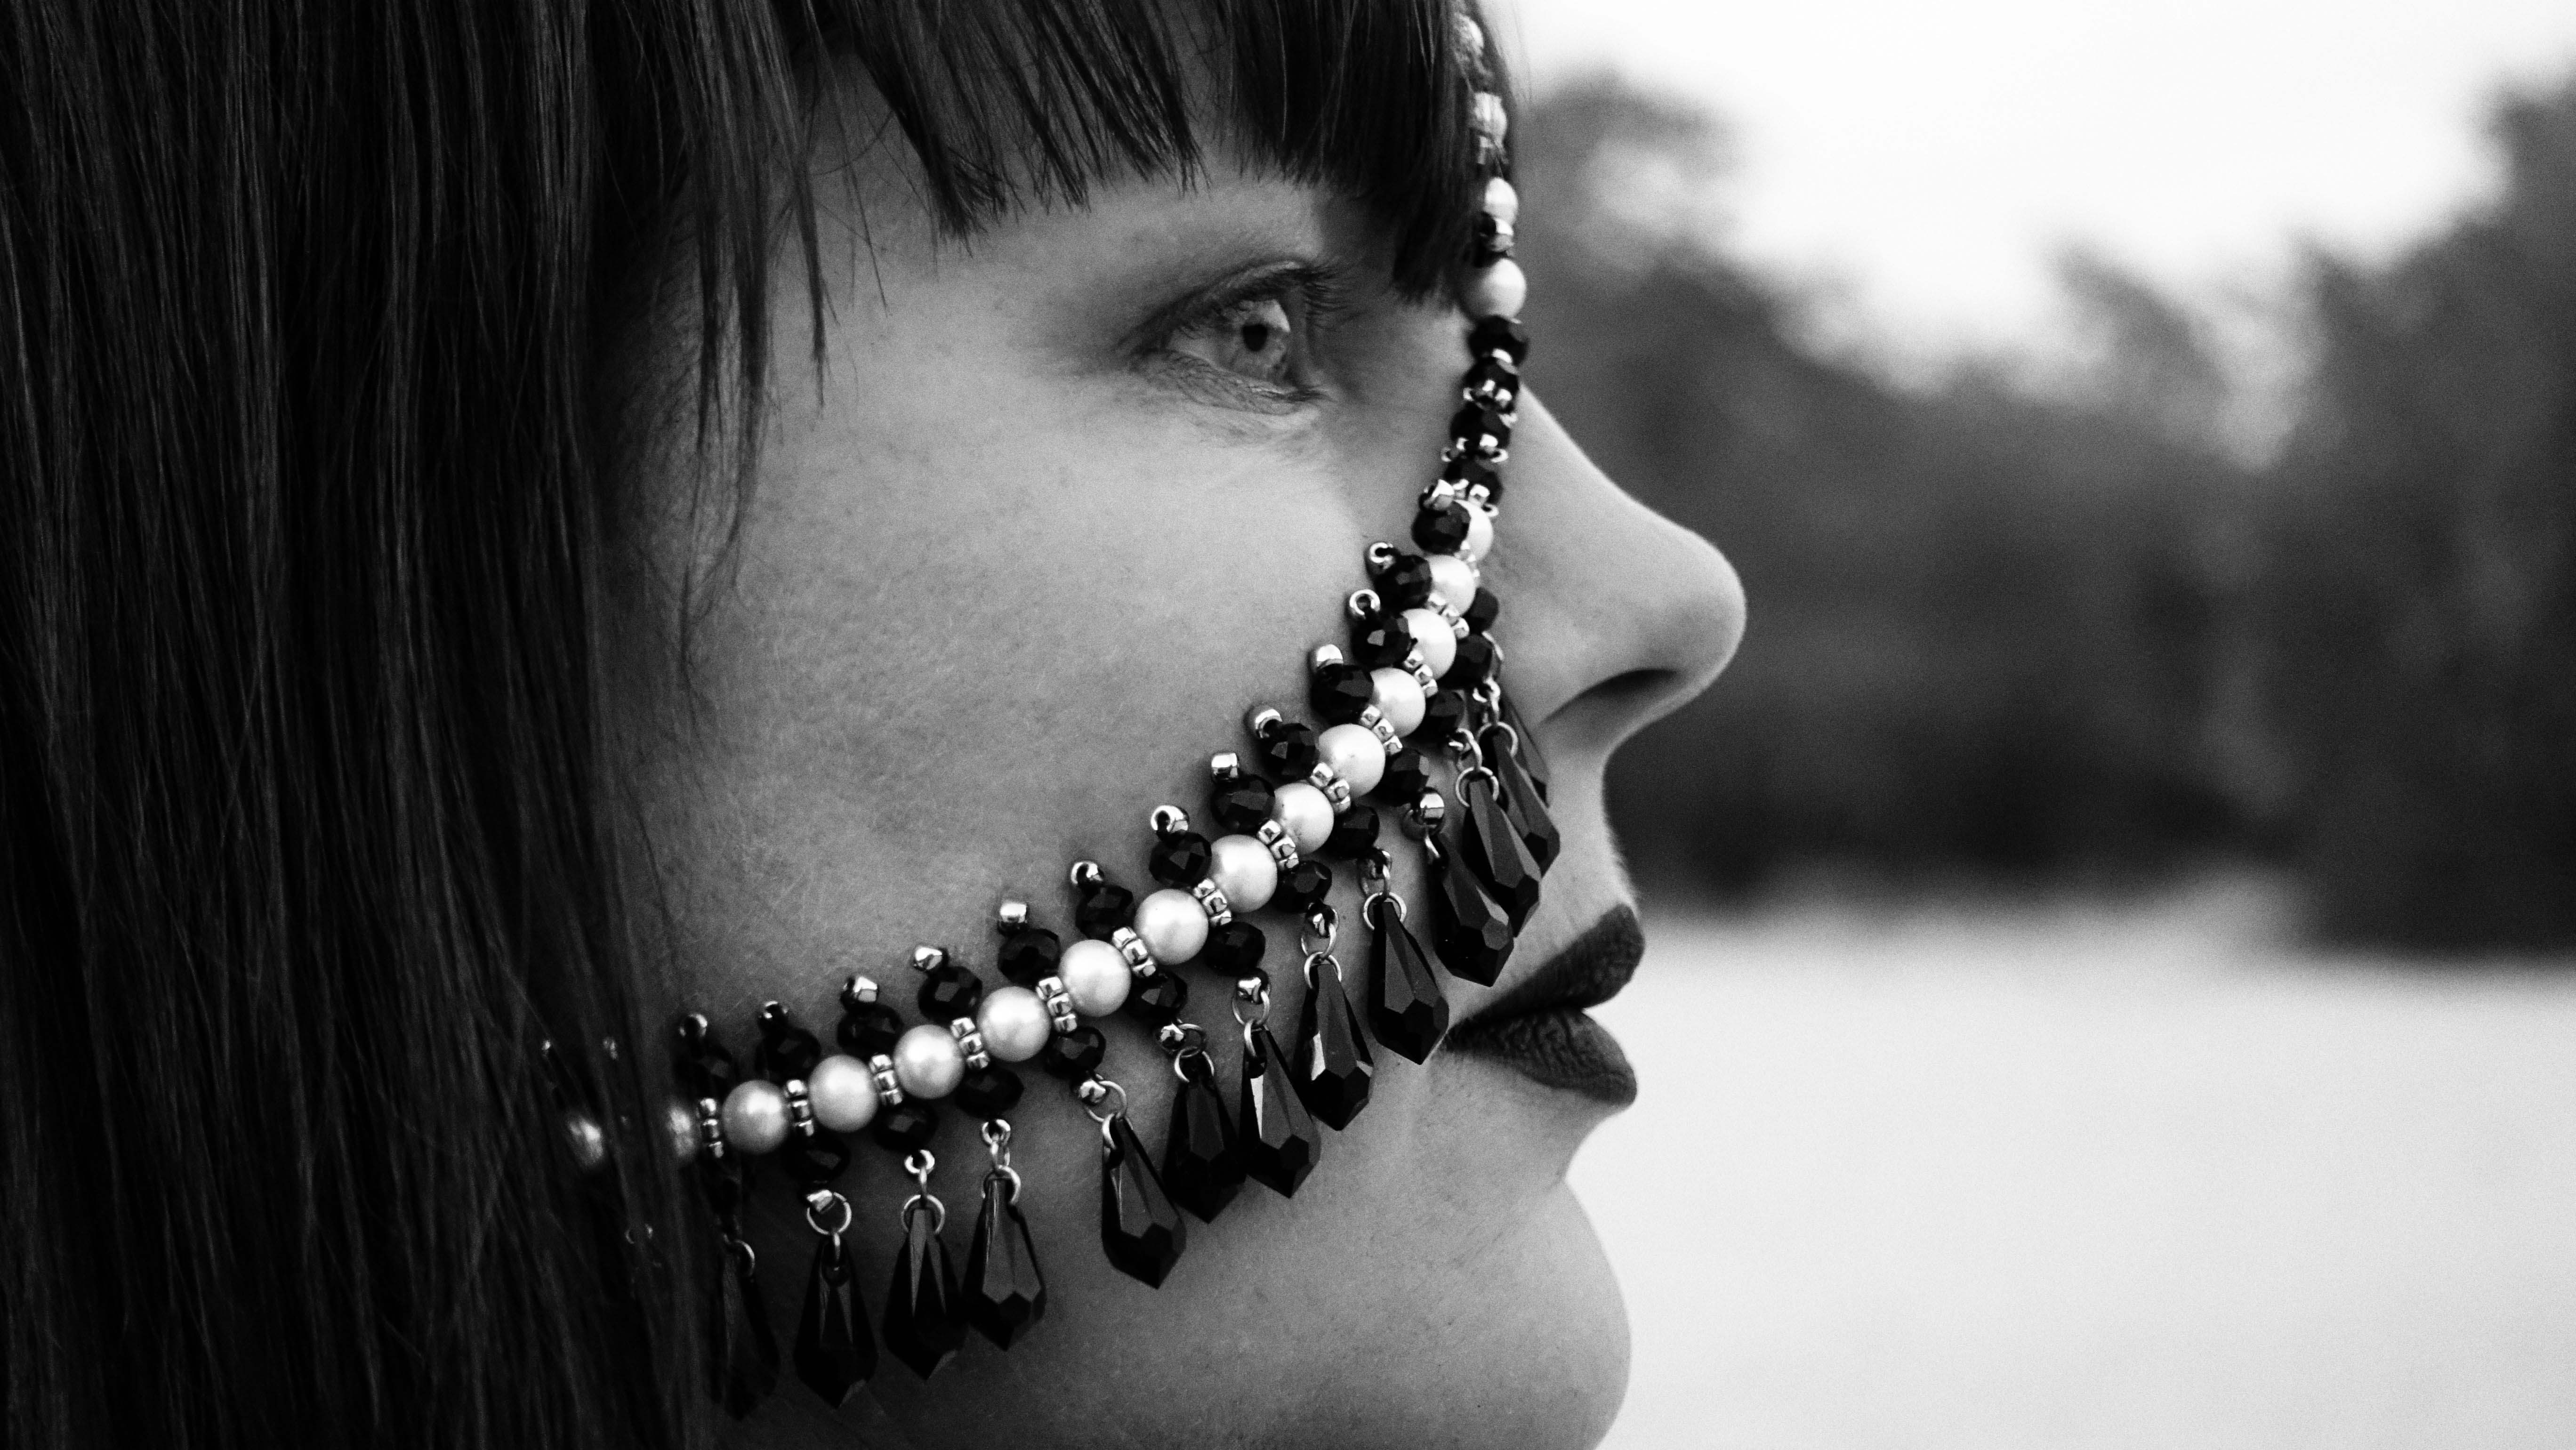 Kittin Shares The Mood Board For Her New Album Cosmos